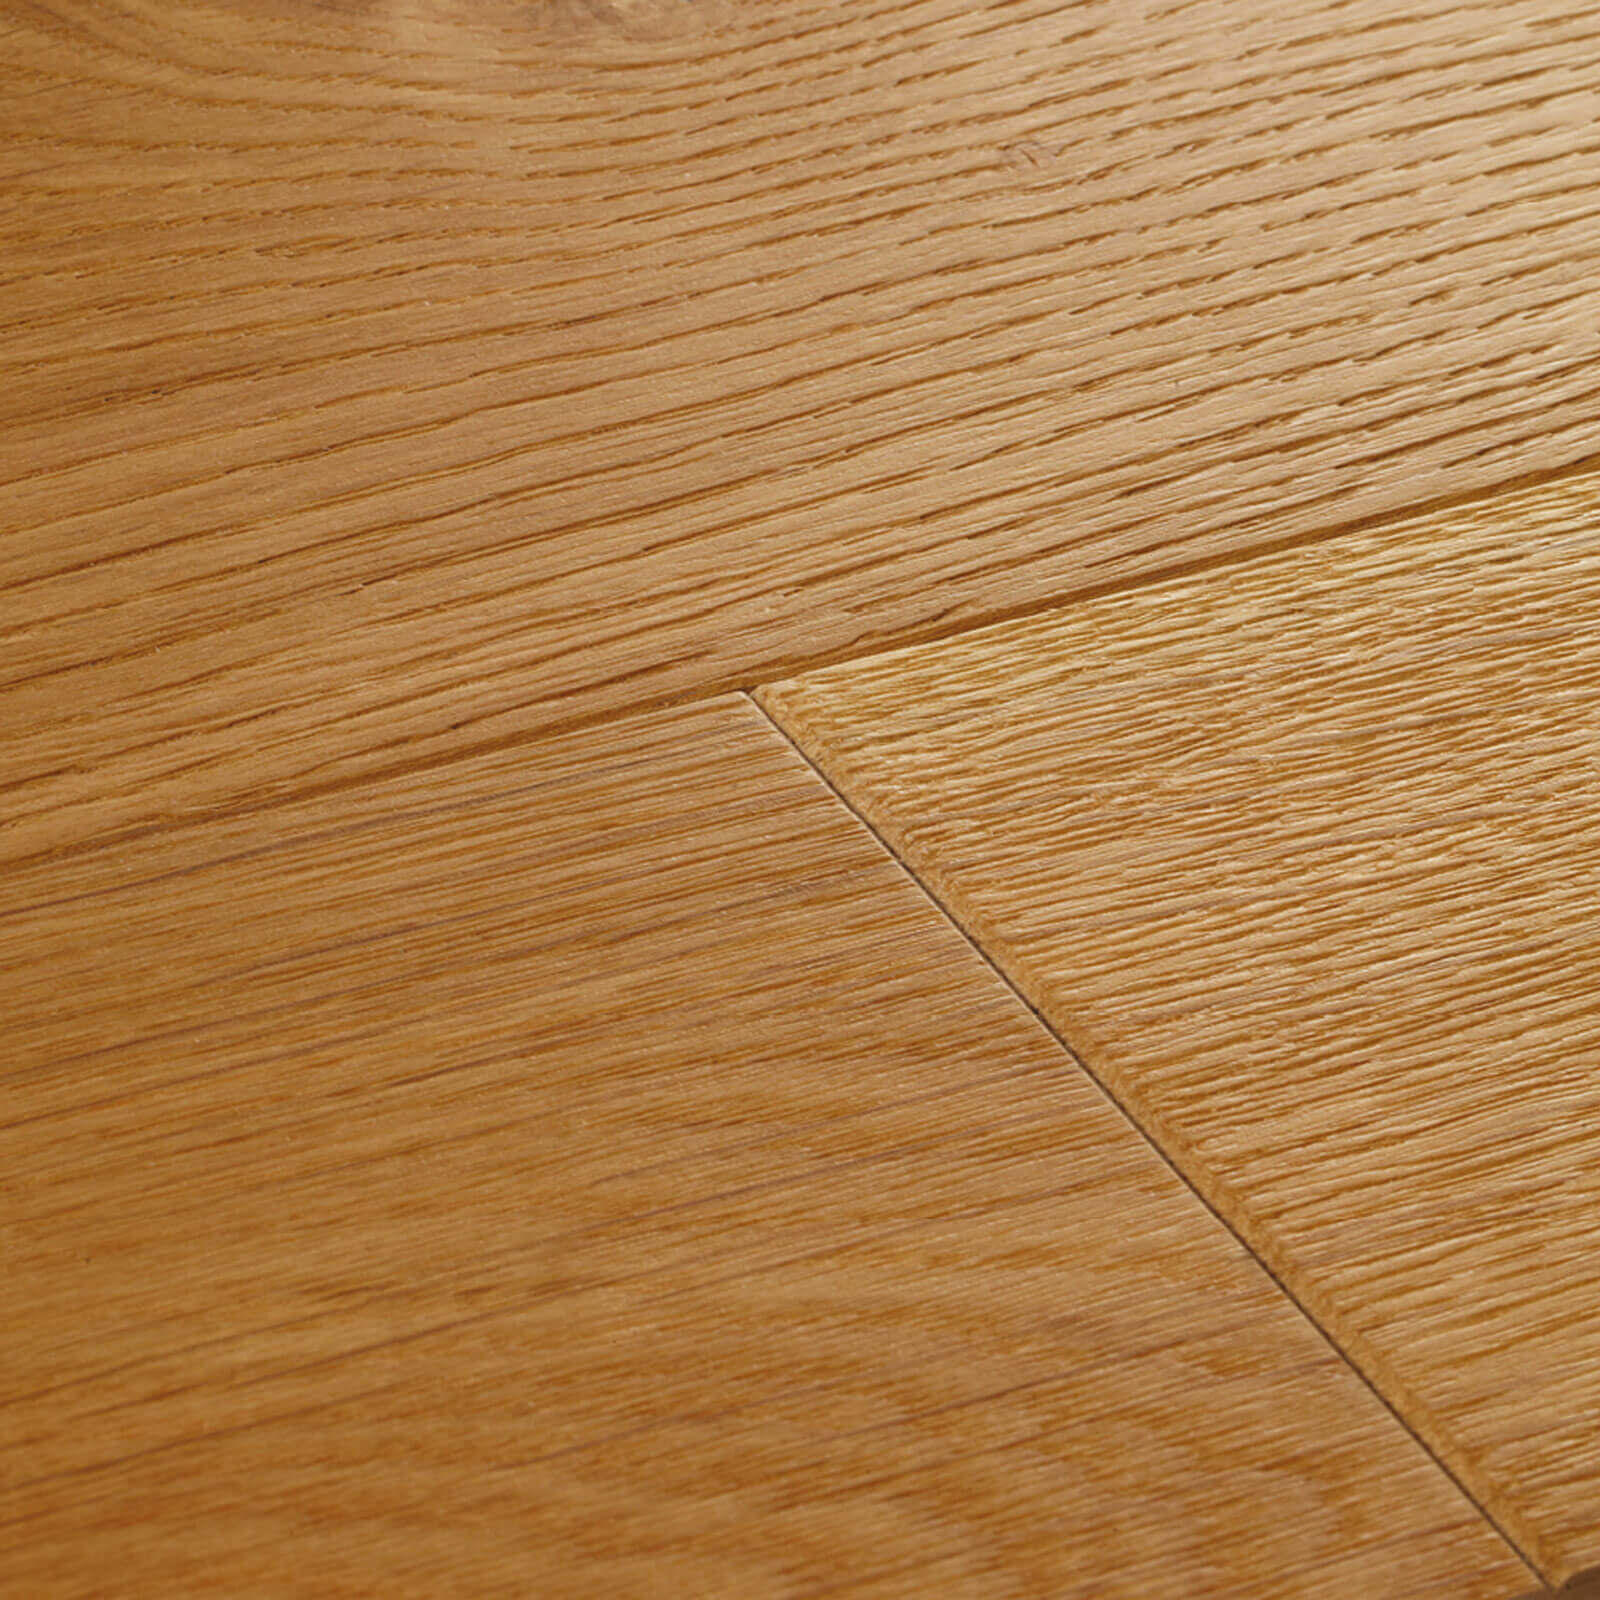 Woodpecker Chepstow Rustic Oak Lacquered Engineered Wood Flooring 189mm 65-HML-001